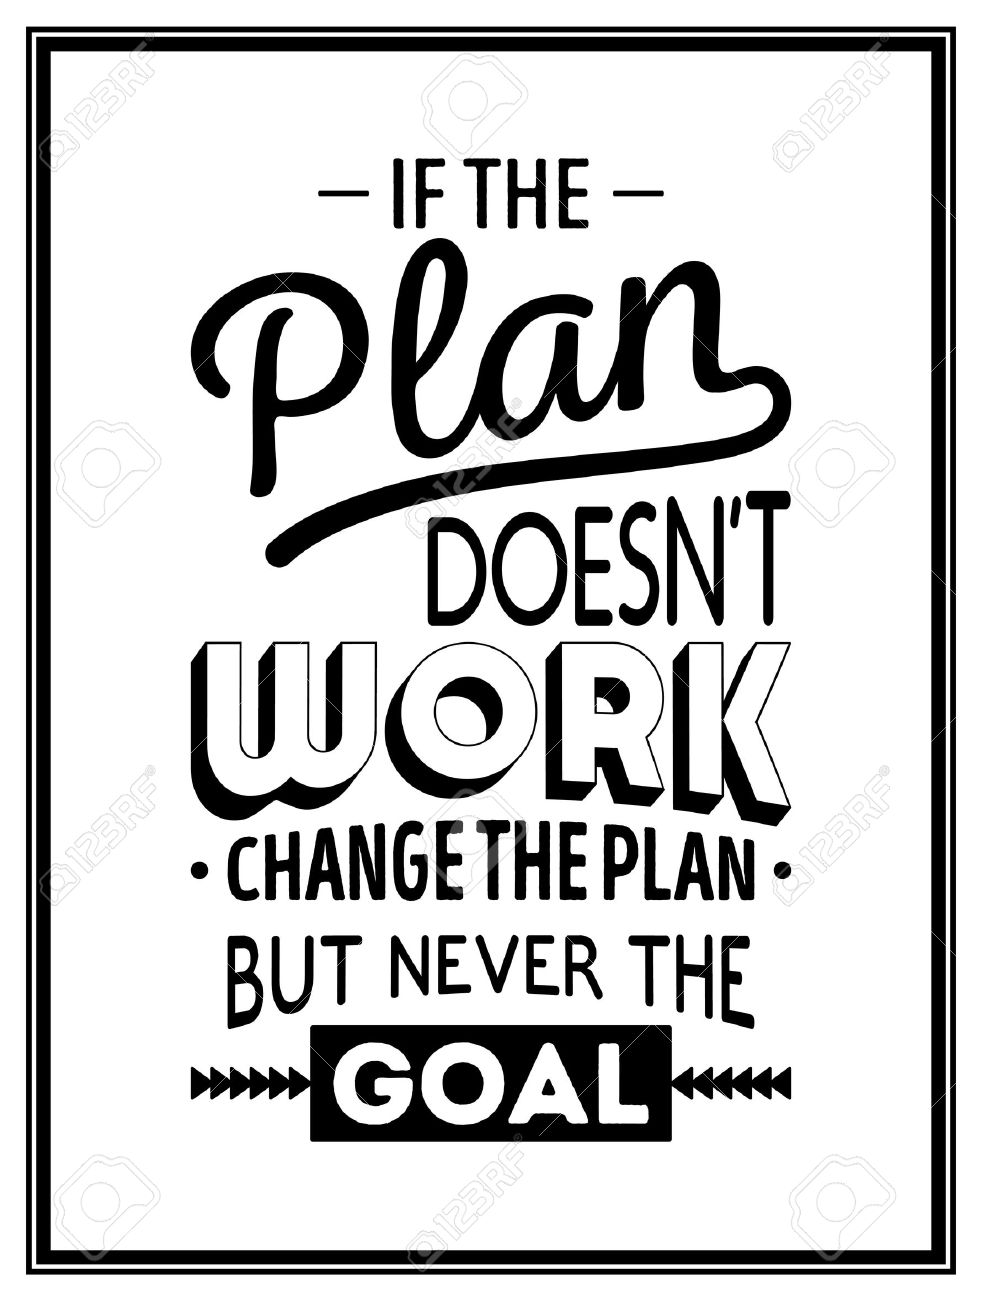 If the plan does not work, change the plan, but never the goal - Quote Typographical Background. Vector illustration. - 46482801